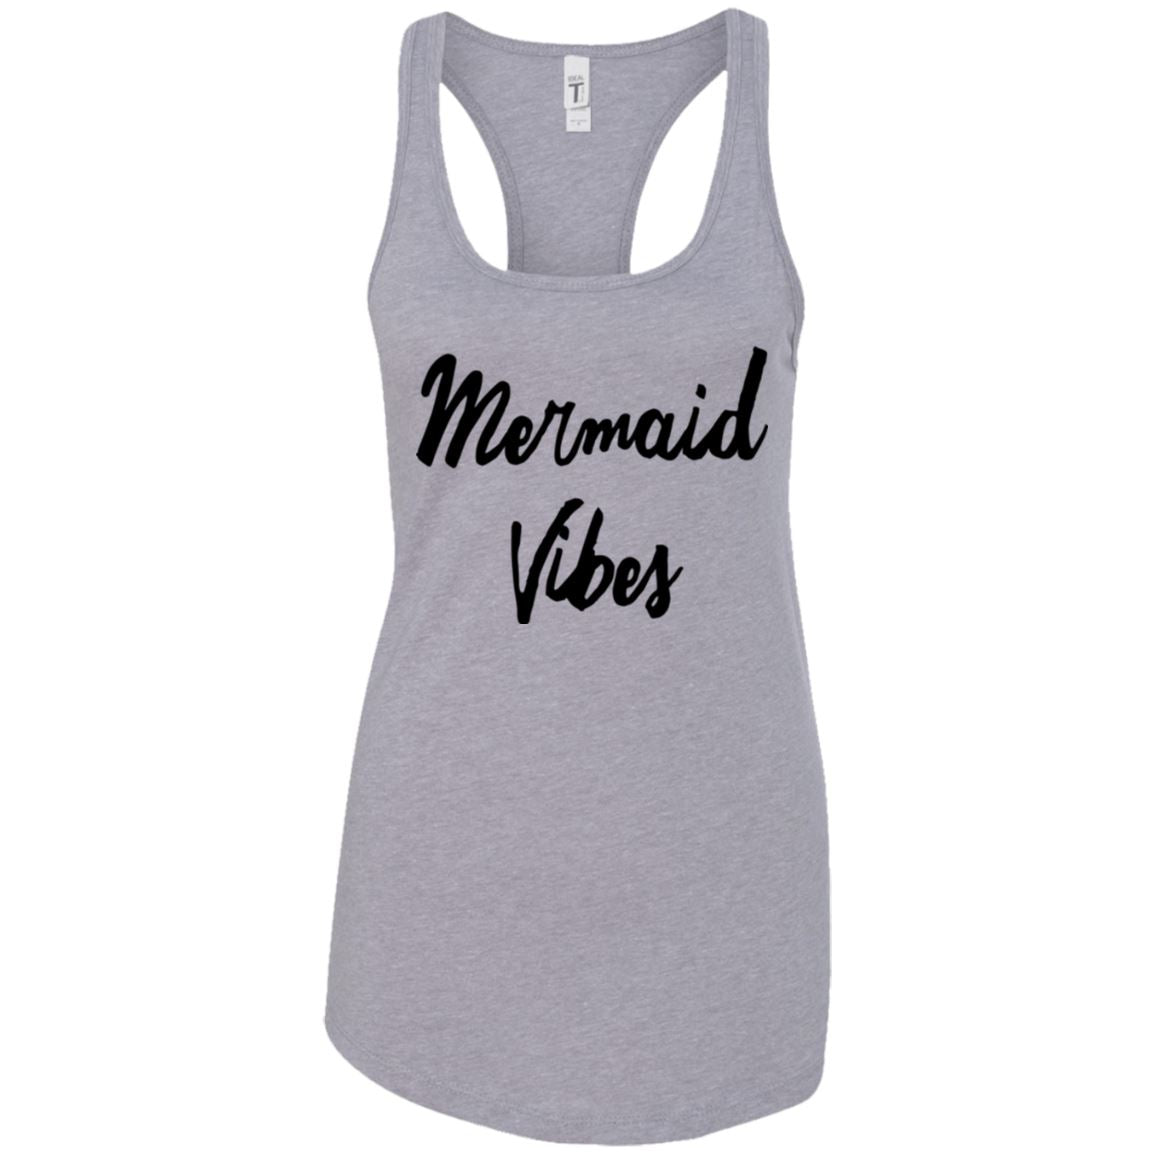 Mermaid Vibes Level Ladies Racerback Tank Mermaid Apparel Heather Grey X-Small